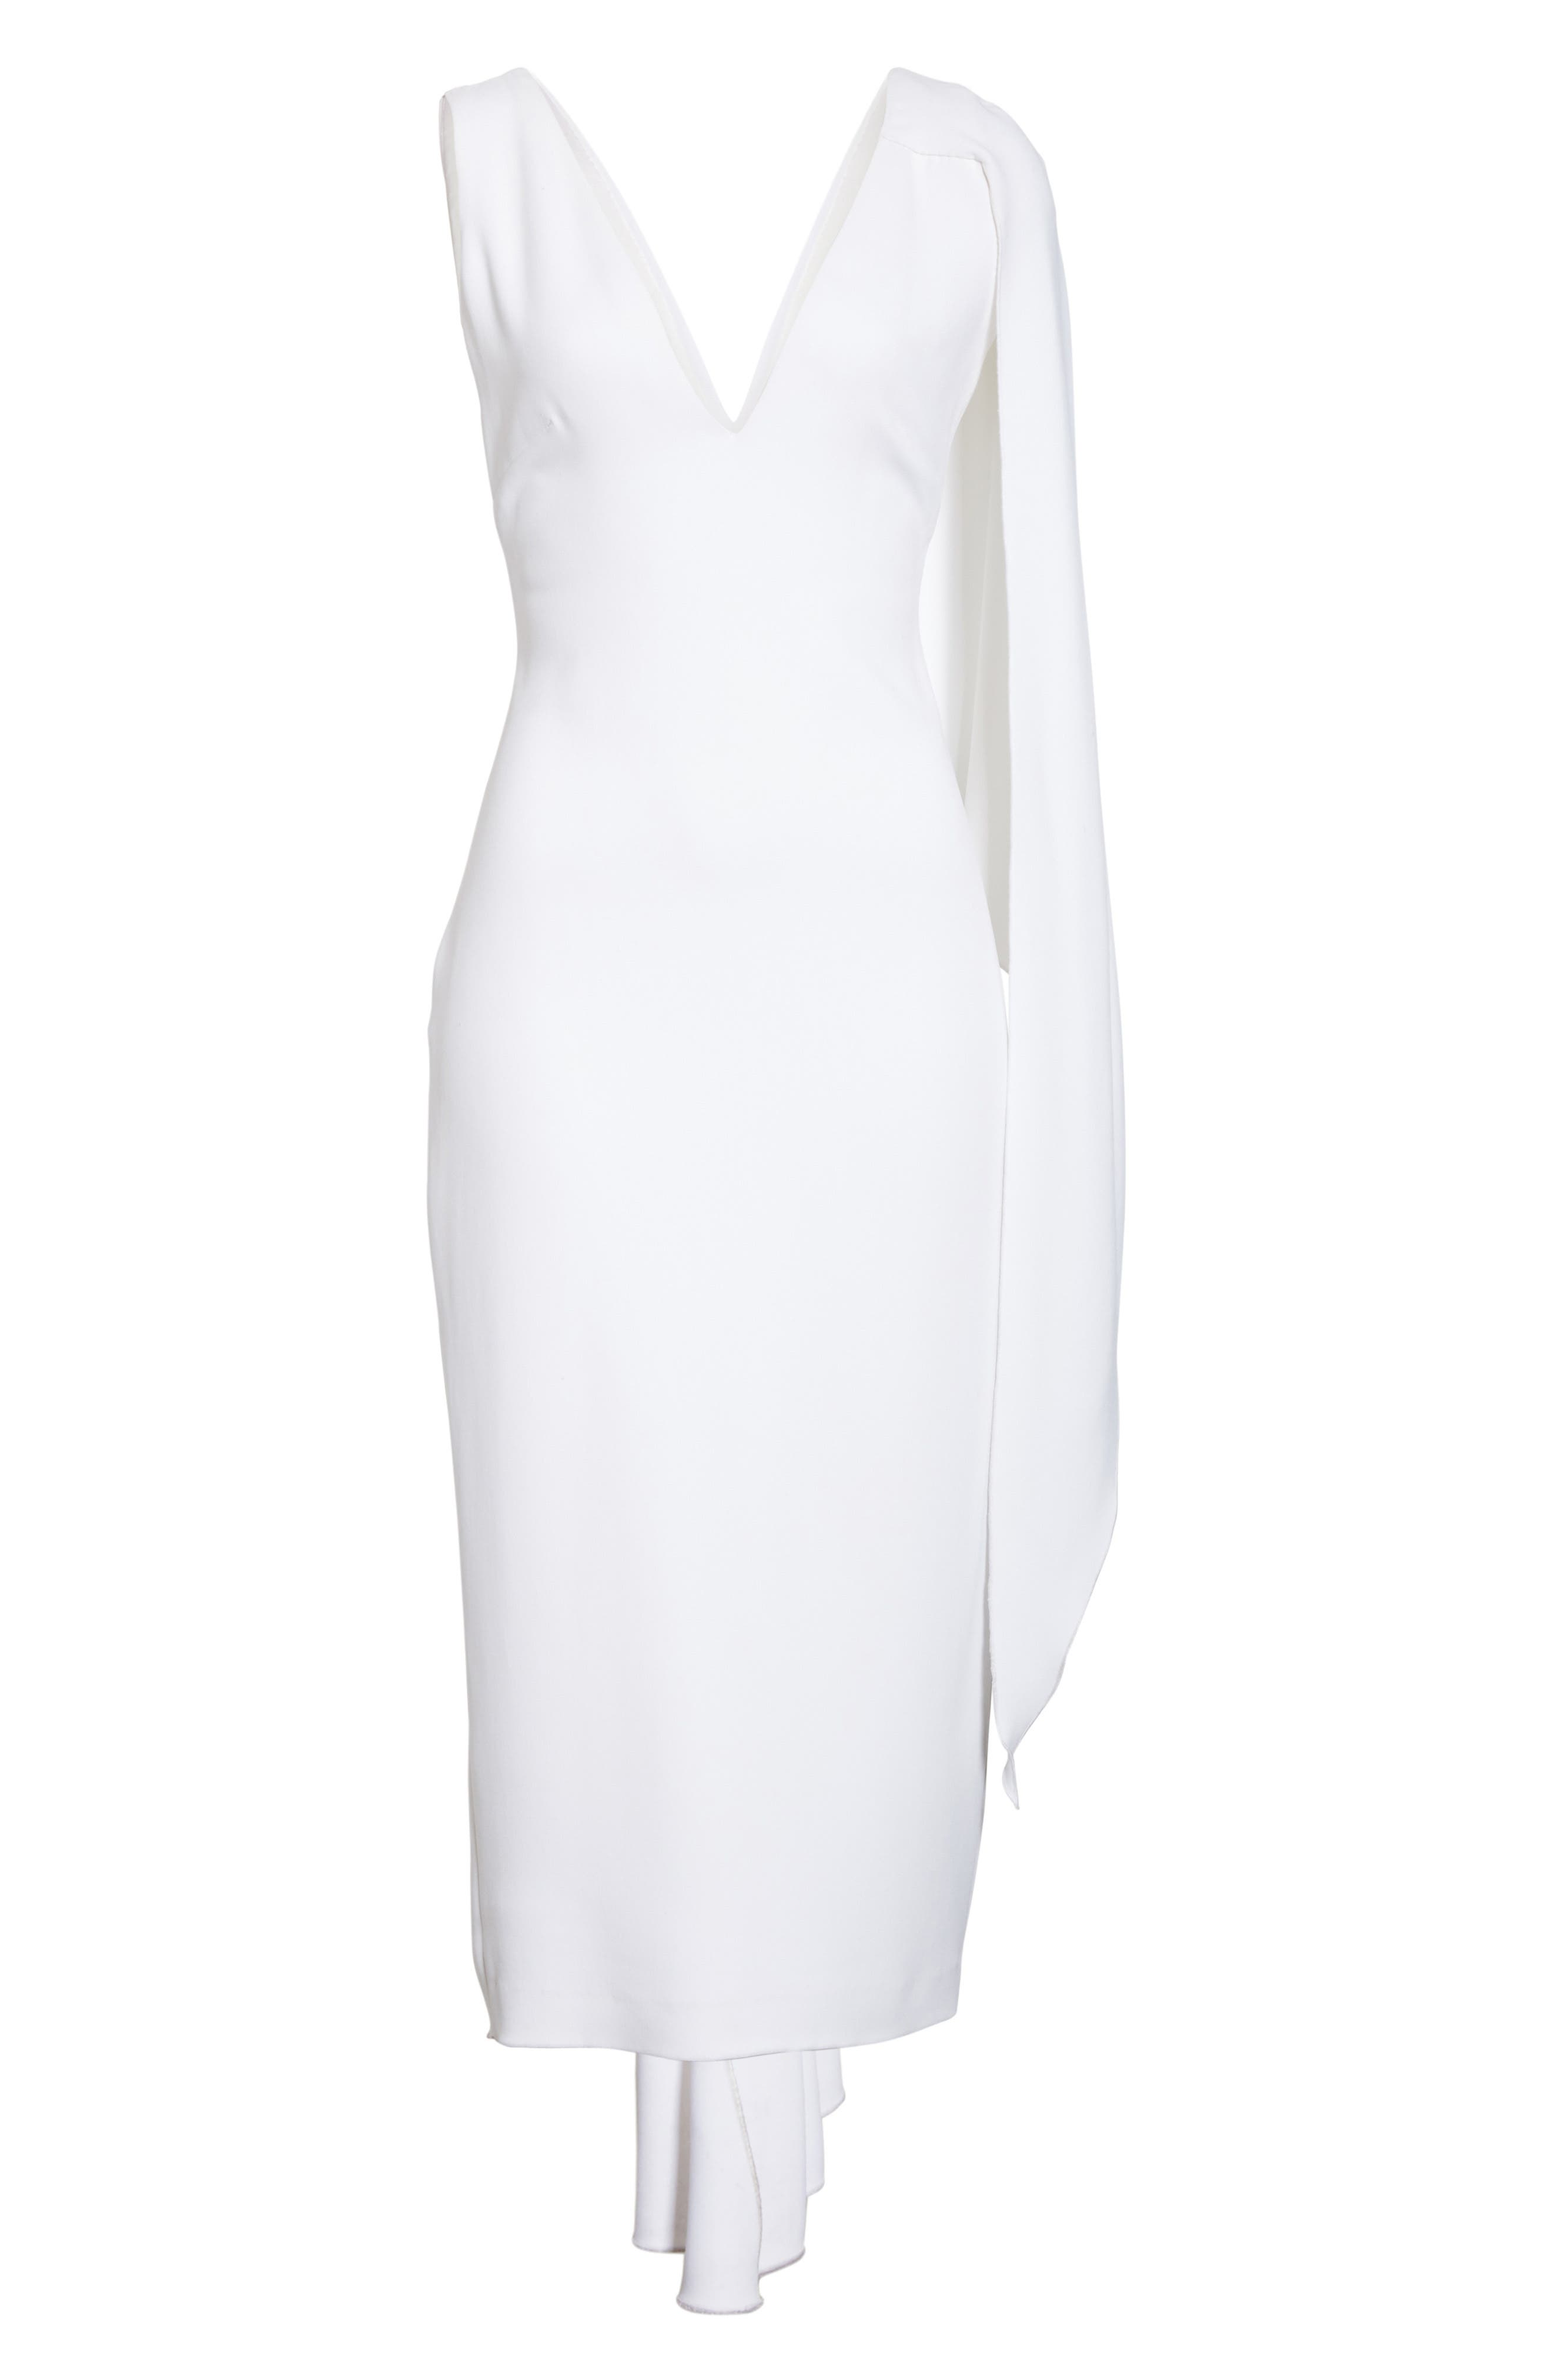 Leta Drape Dress,                             Alternate thumbnail 7, color,                             WHITE